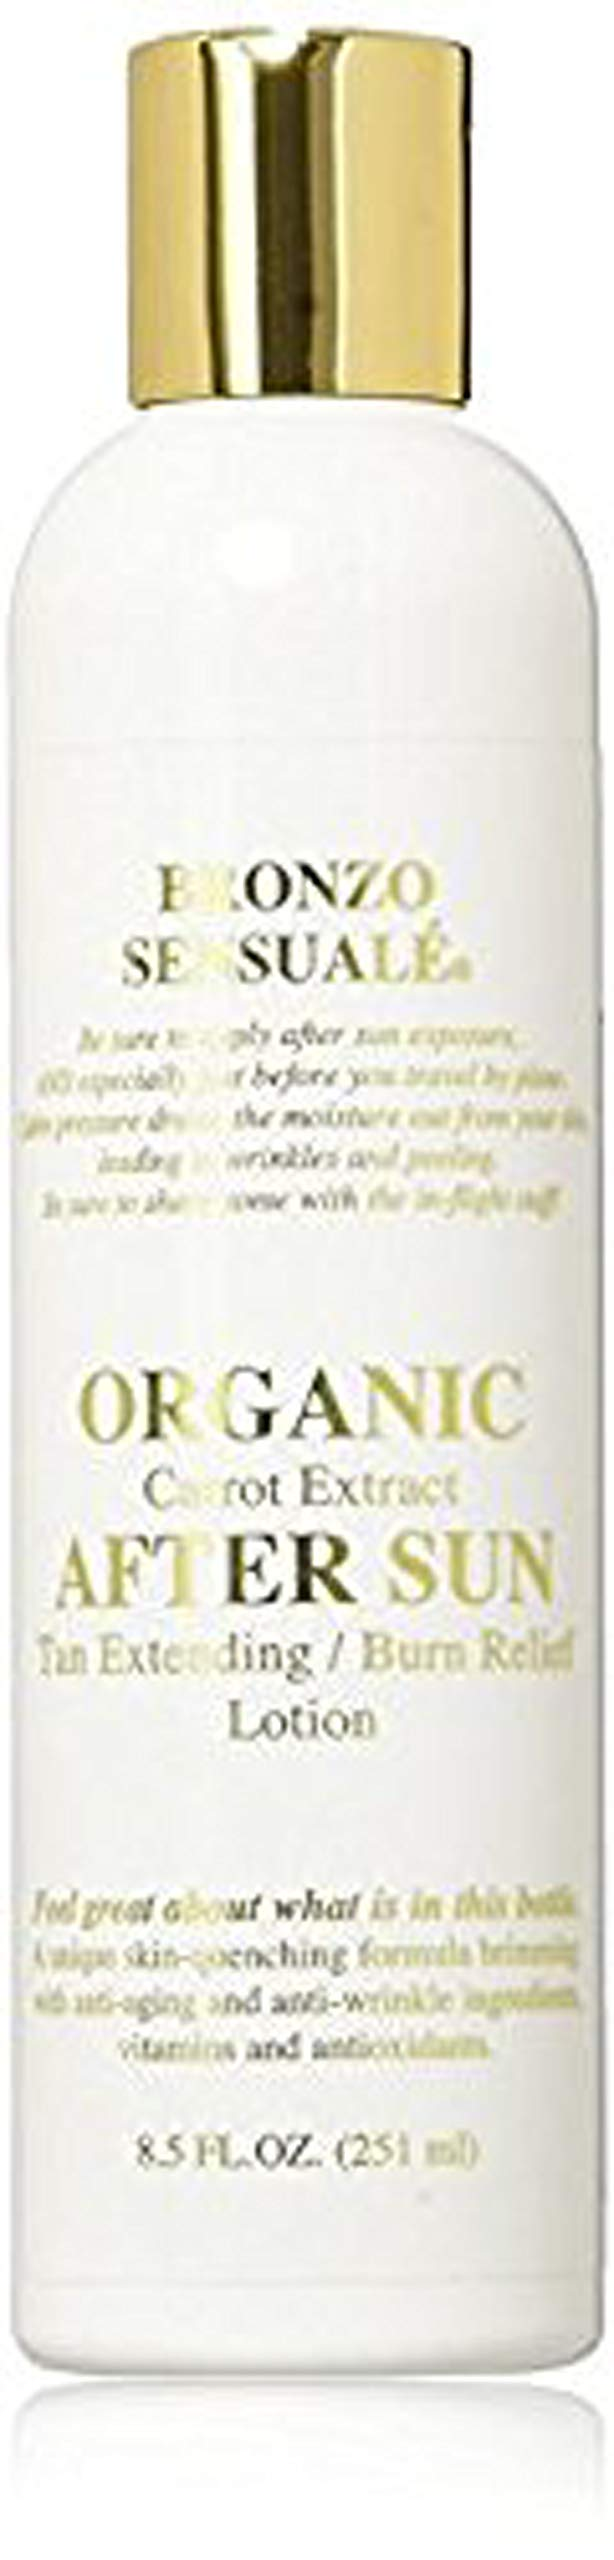 Bronzo Sensualé After Sun and Sun Tan Extender Carrot Lotion 8.5 Ounces by BRONZO SENSUALE (Image #1)